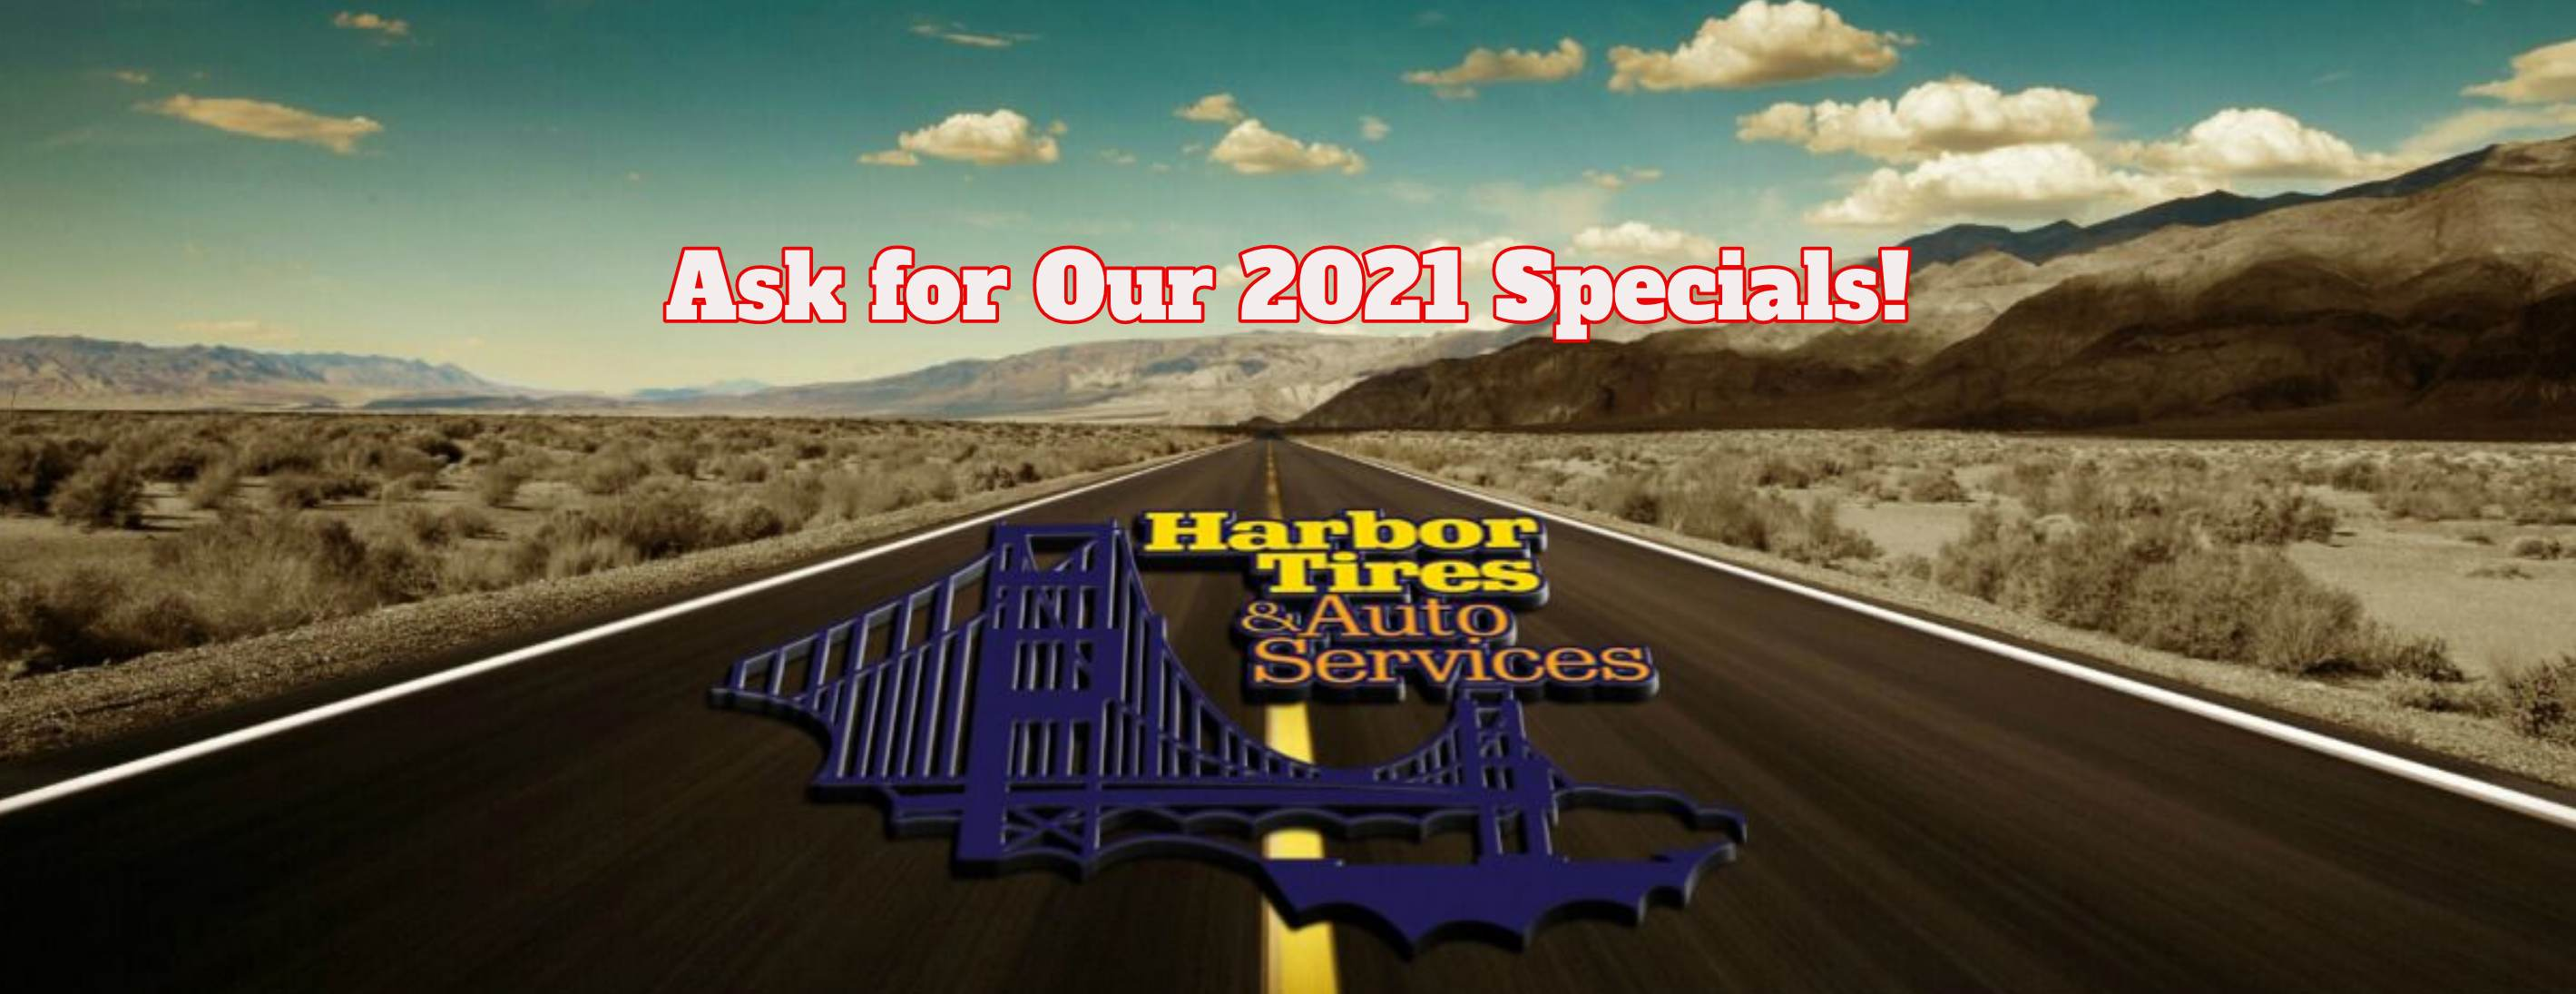 Ask for Our 2021 Specials